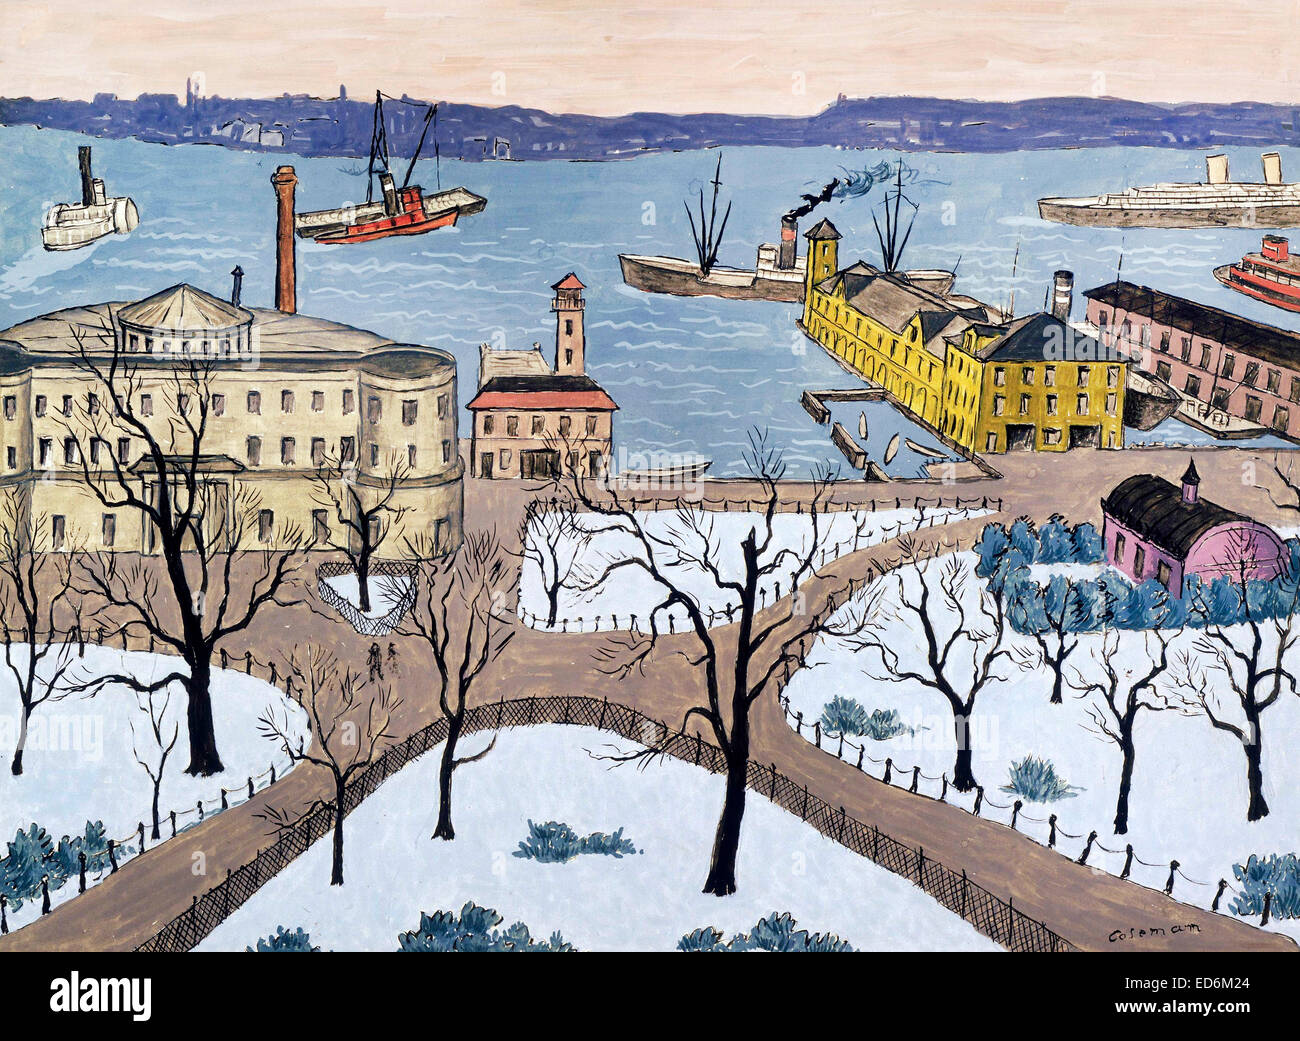 Glenn O. Coleman, Battery Park. Undated. Gouache on paper. The Phillips Collection, Washington, D.C., USA. - Stock Image